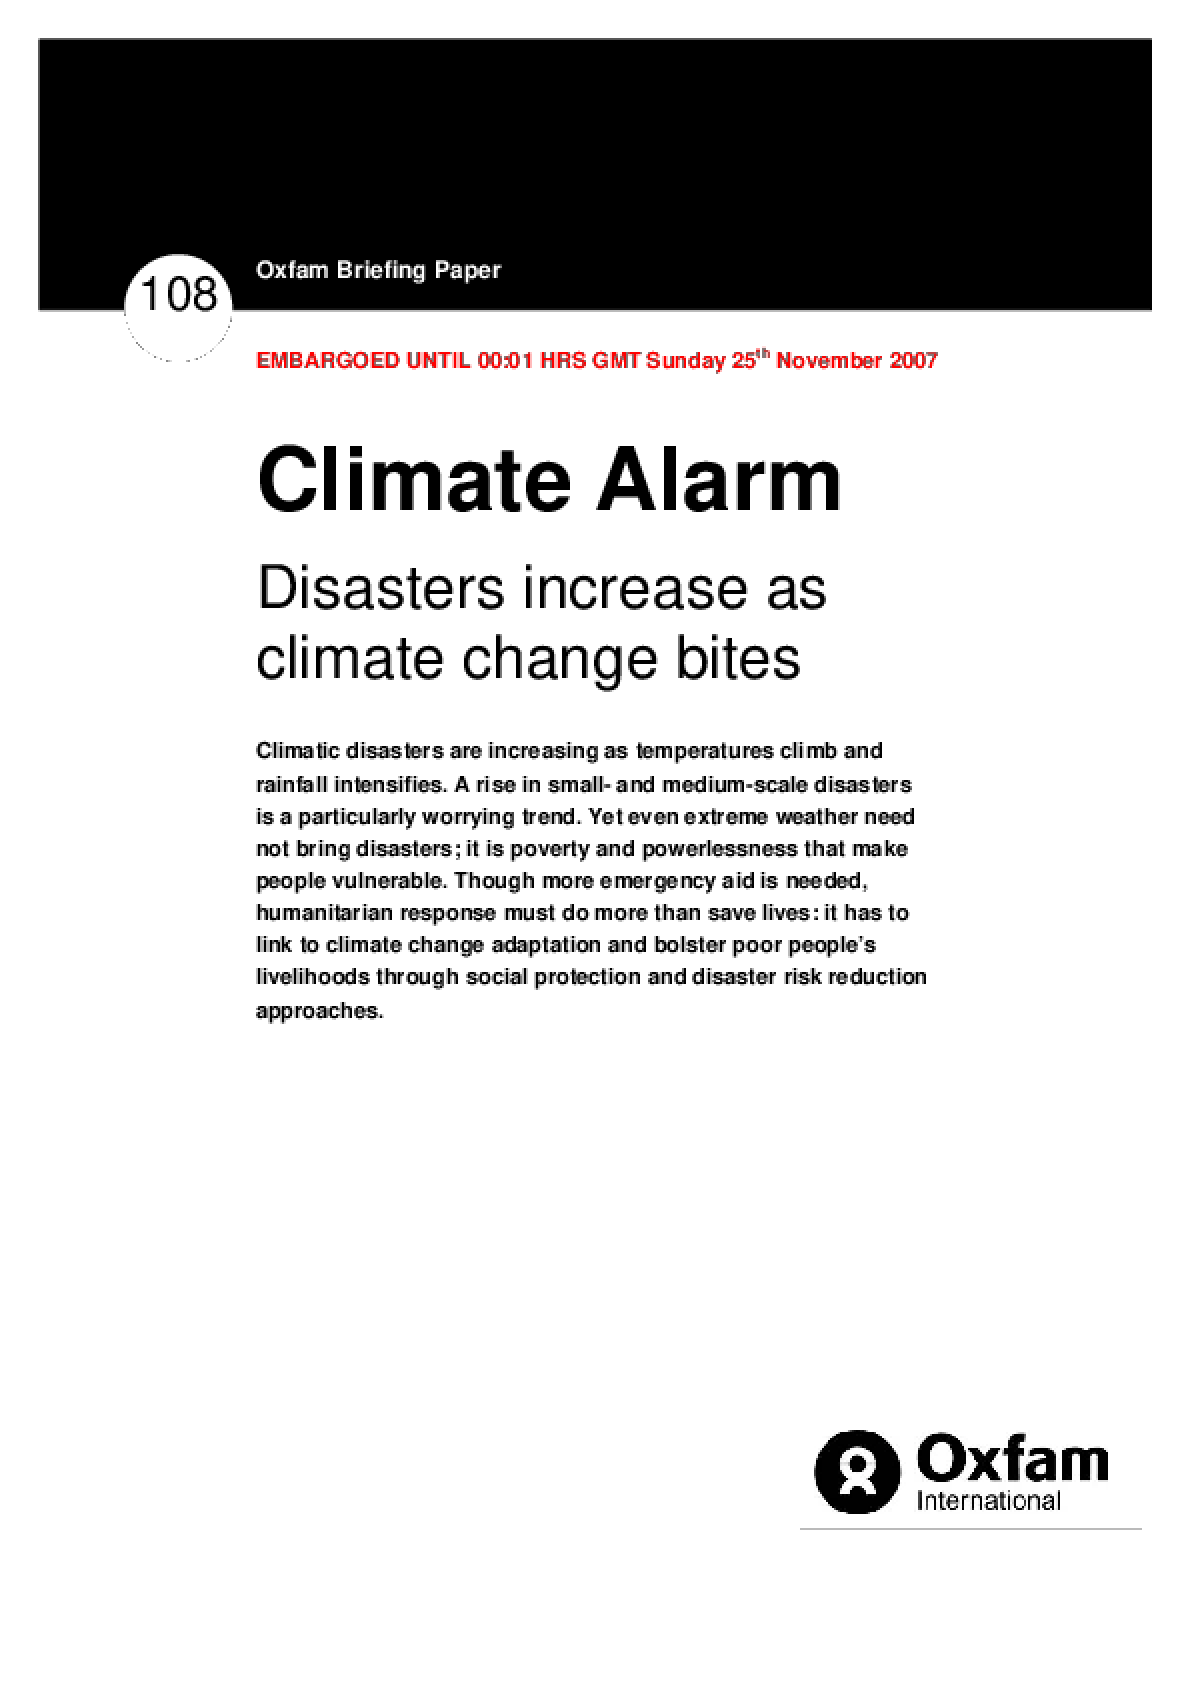 Climate Alarm: Disasters increase as climate change bites